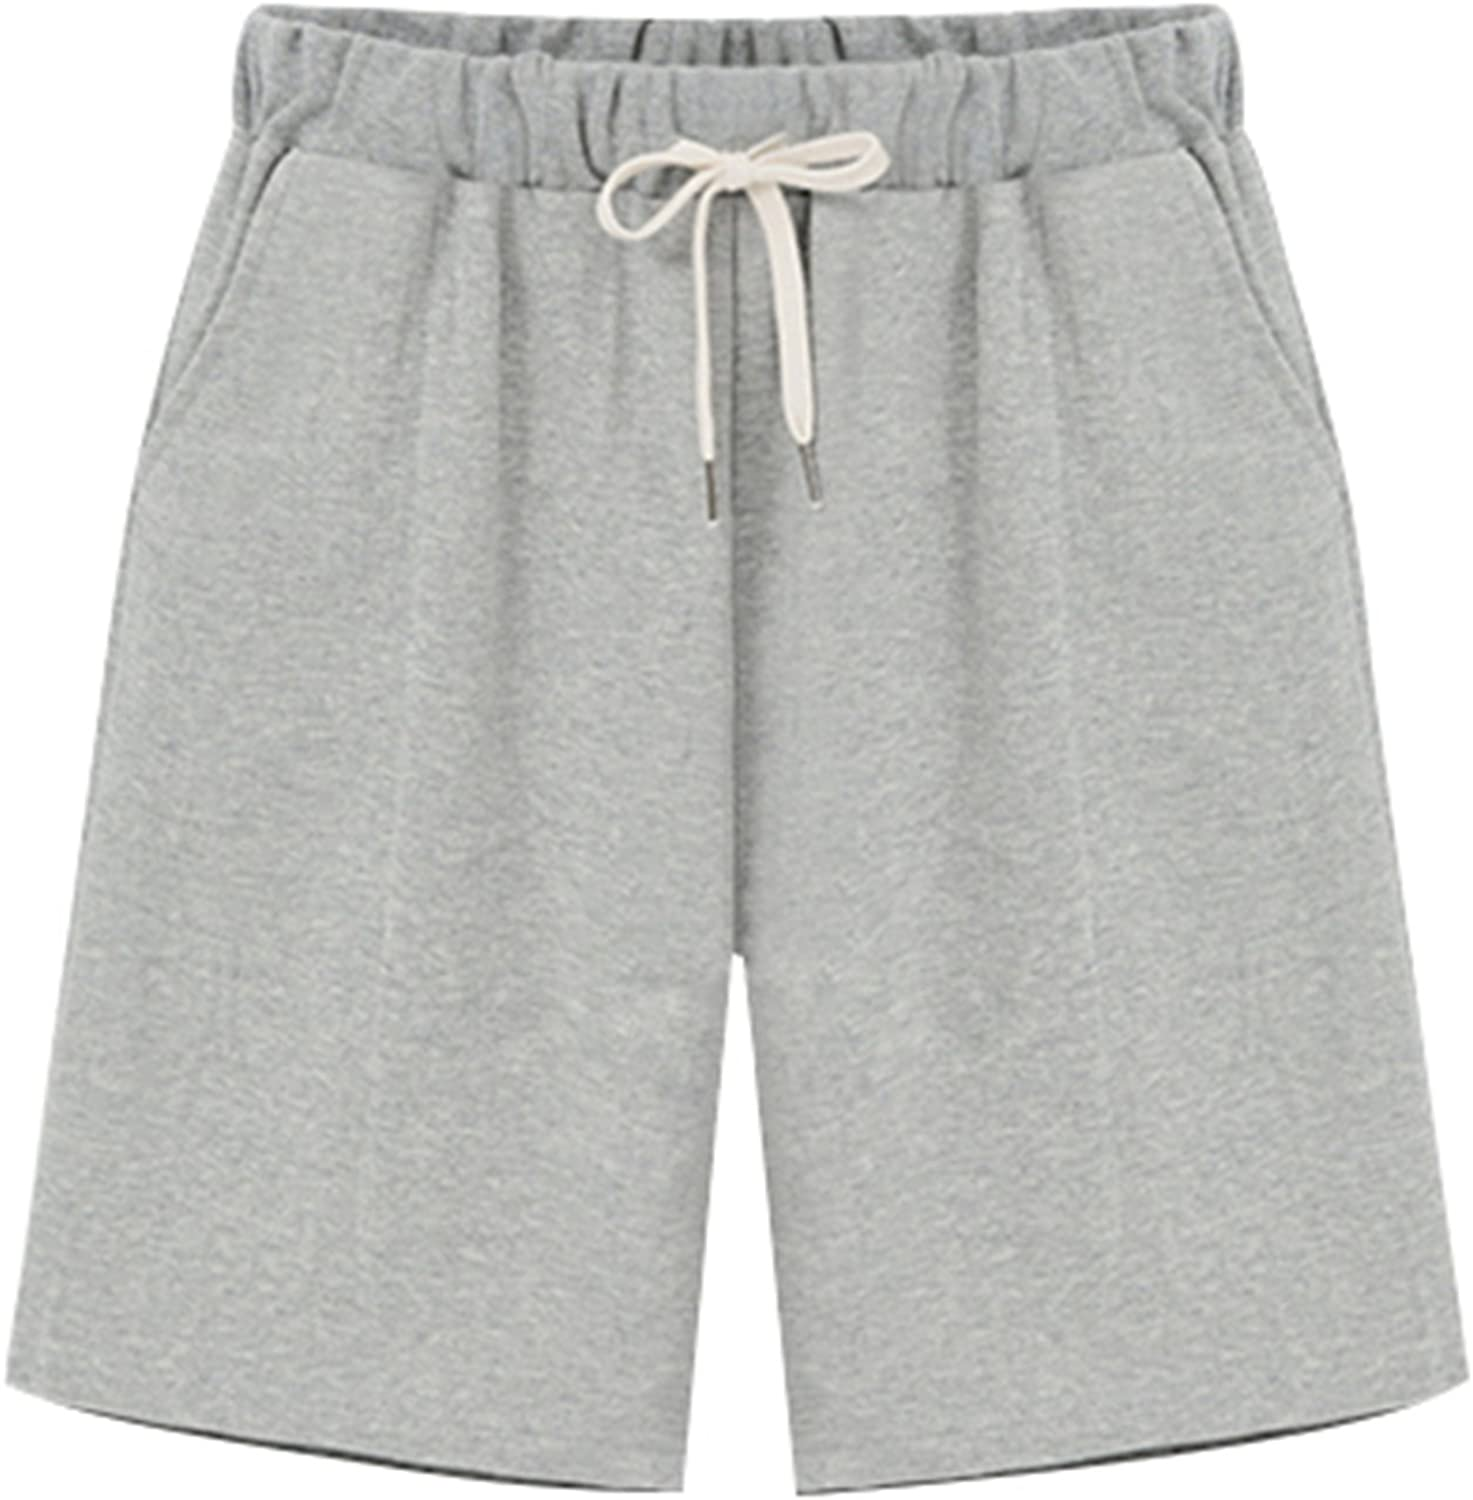 Vcansion Women's Casual Cotton Elastic Waist Drawstring Summer Beach Shorts with Pockets